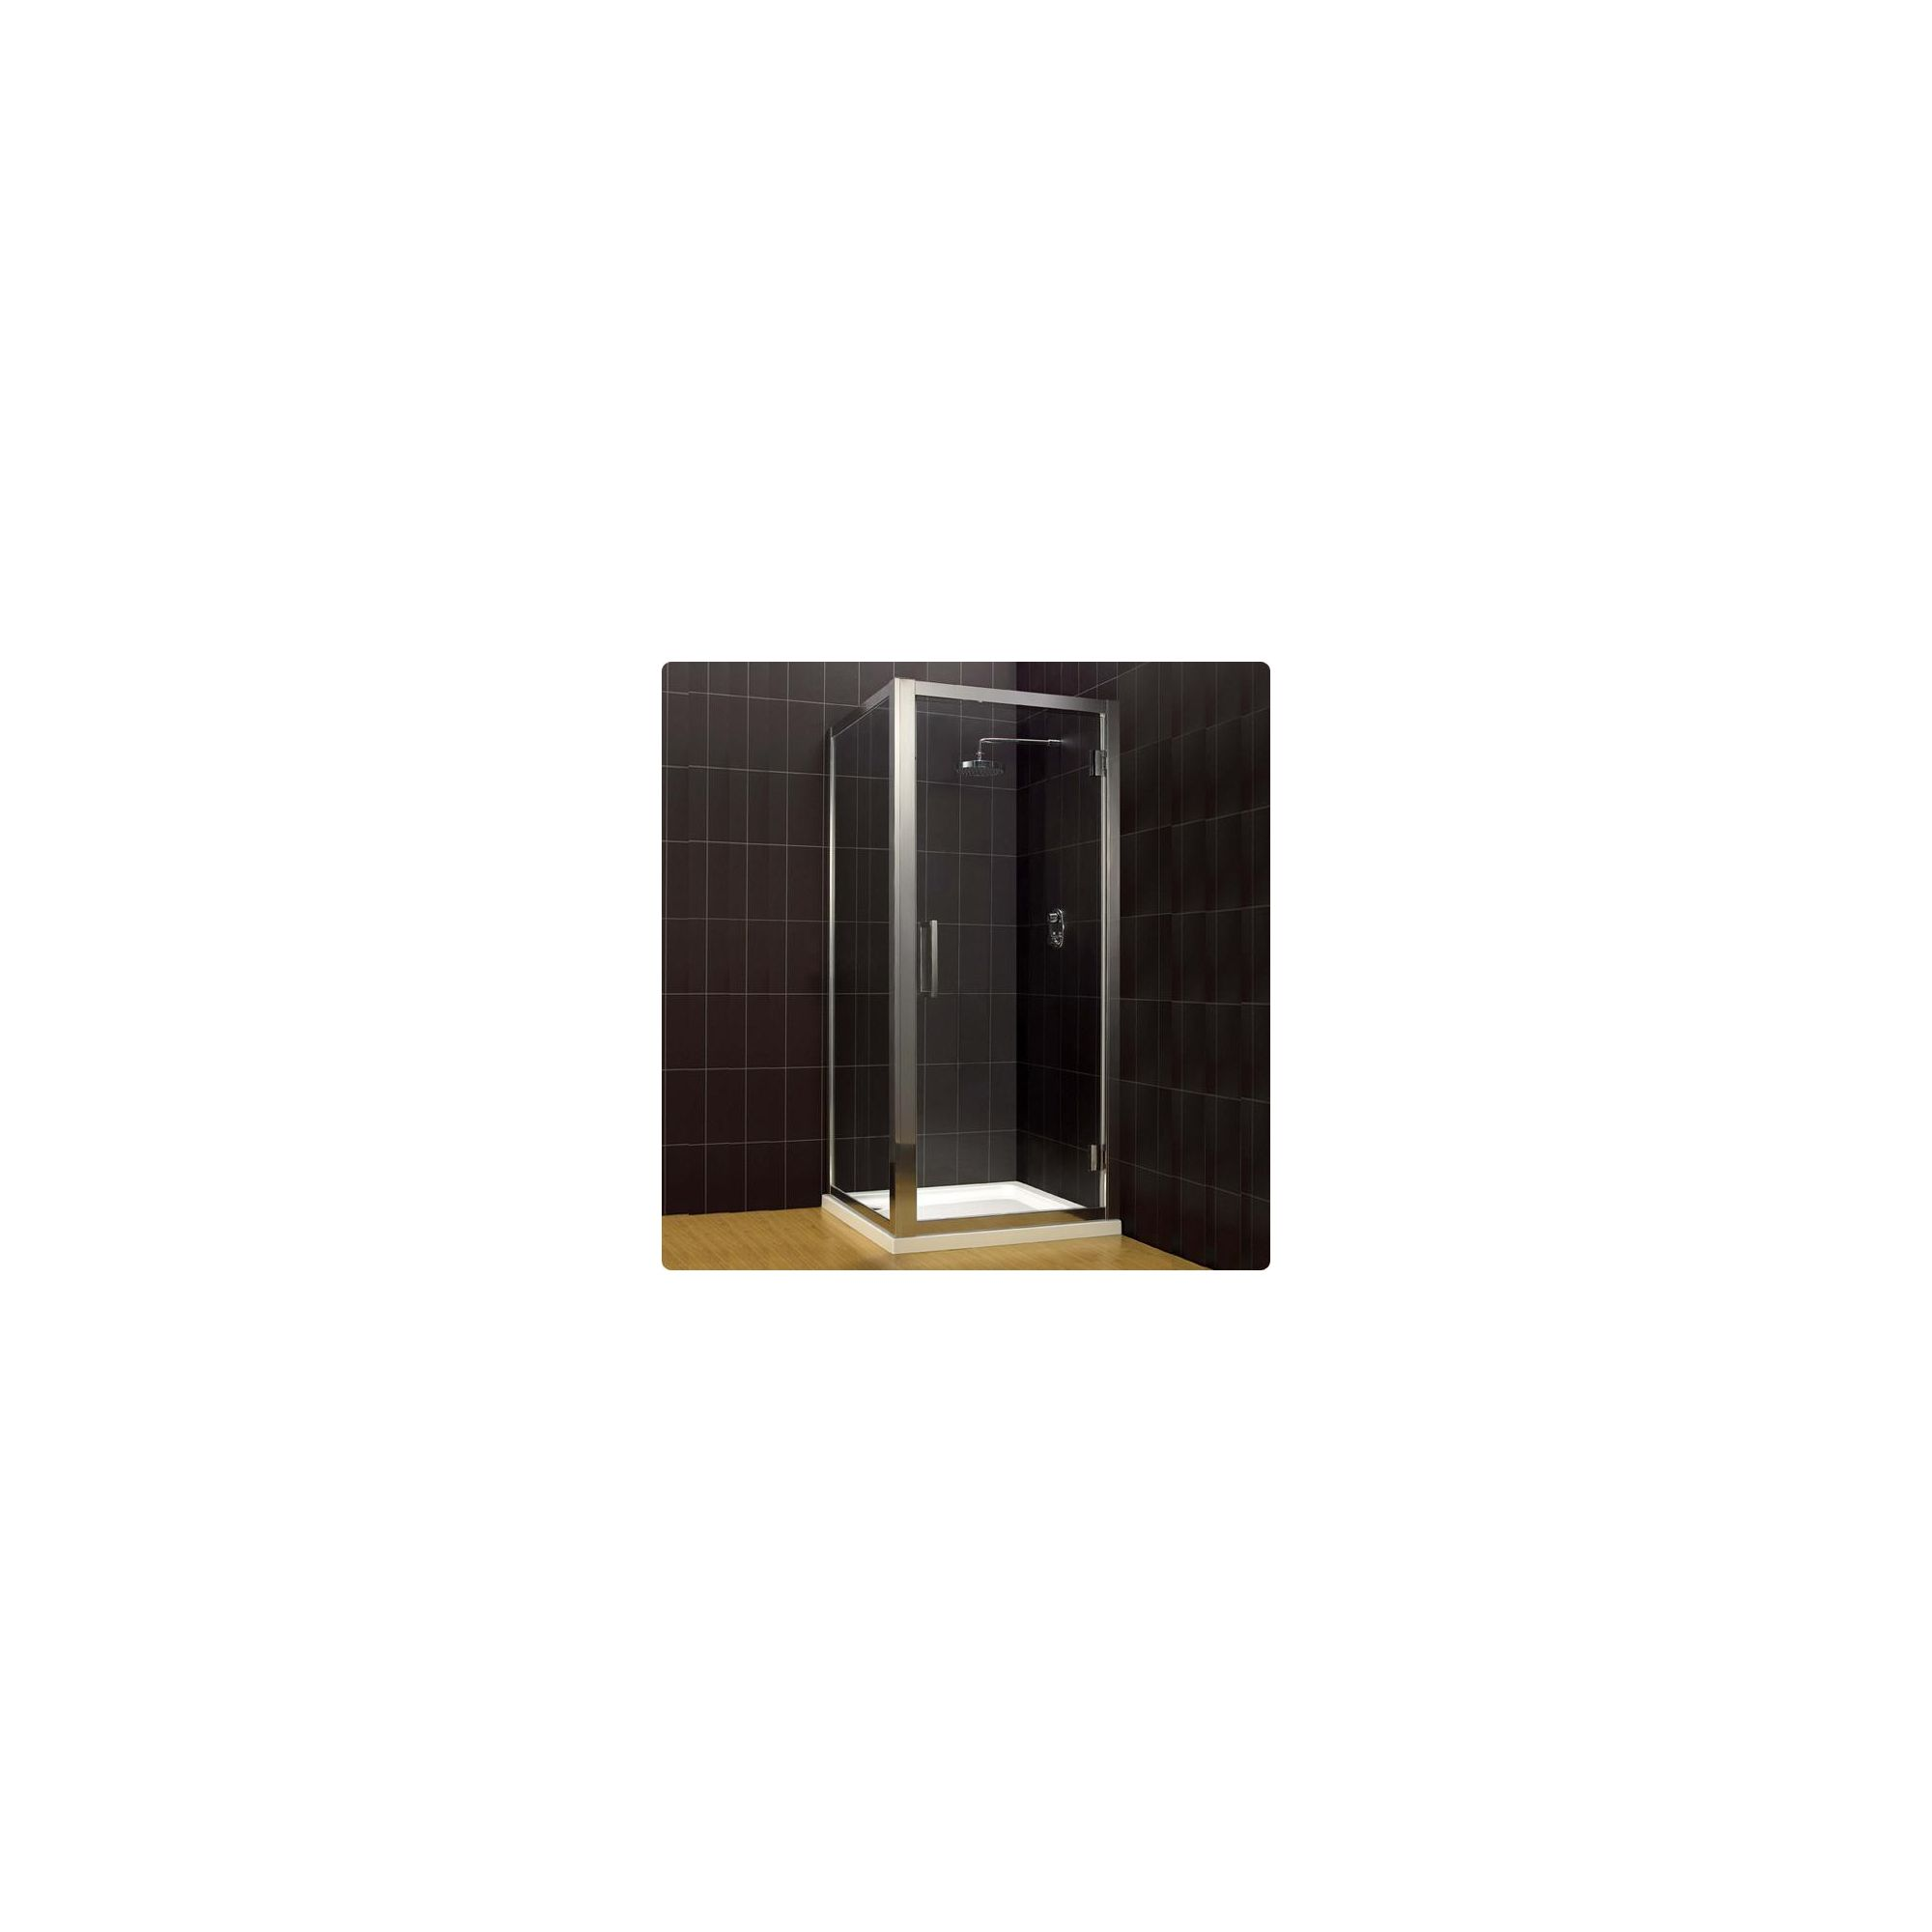 Duchy Supreme Silver Hinged Door Shower Enclosure with Towel Rail, 800mm x 760mm, Standard Tray, 8mm Glass at Tesco Direct